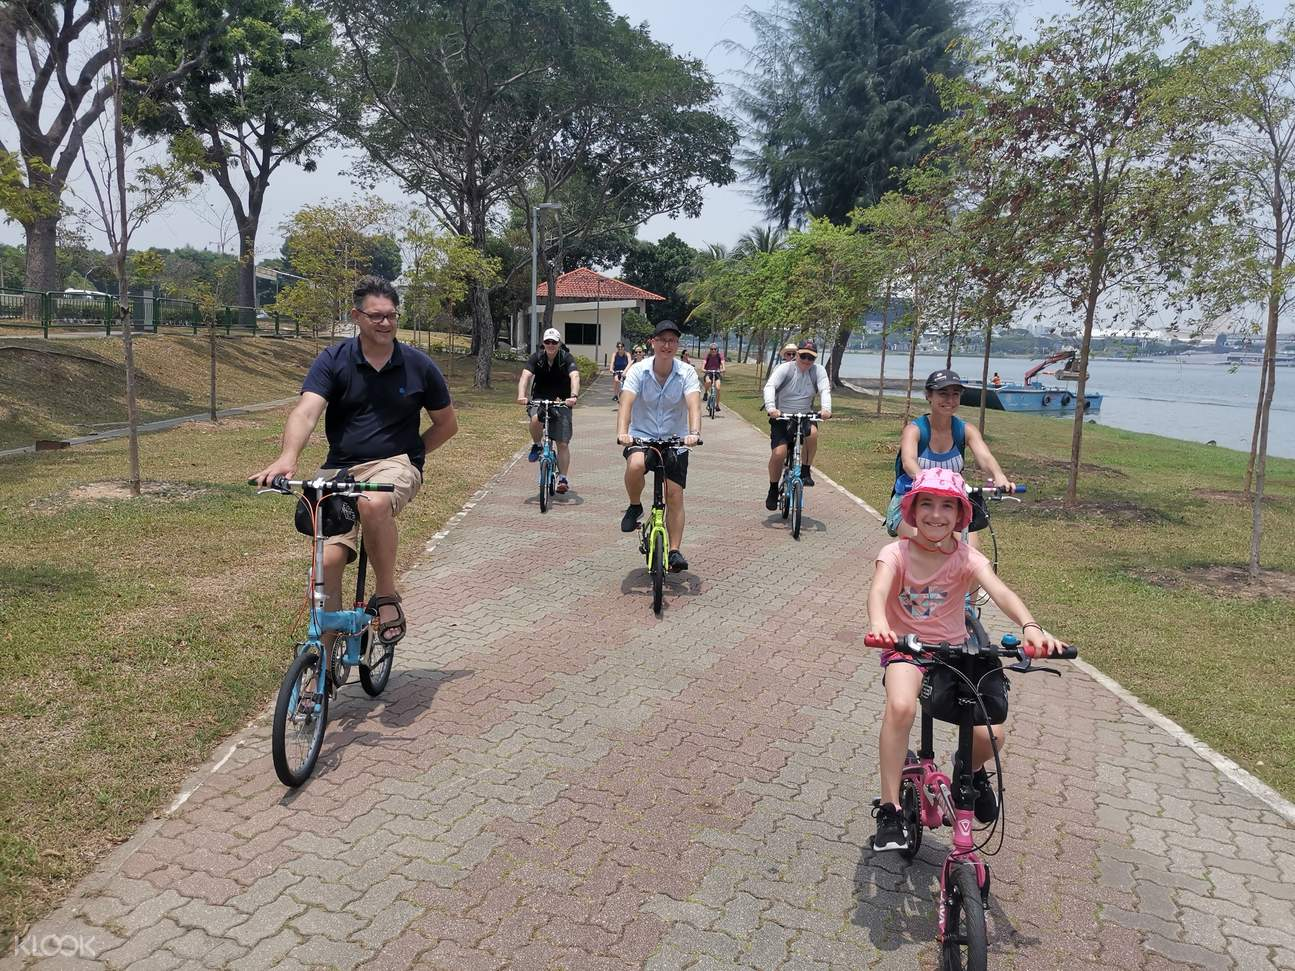 Your tour guide will give you great tips on what to do while cycling around town.